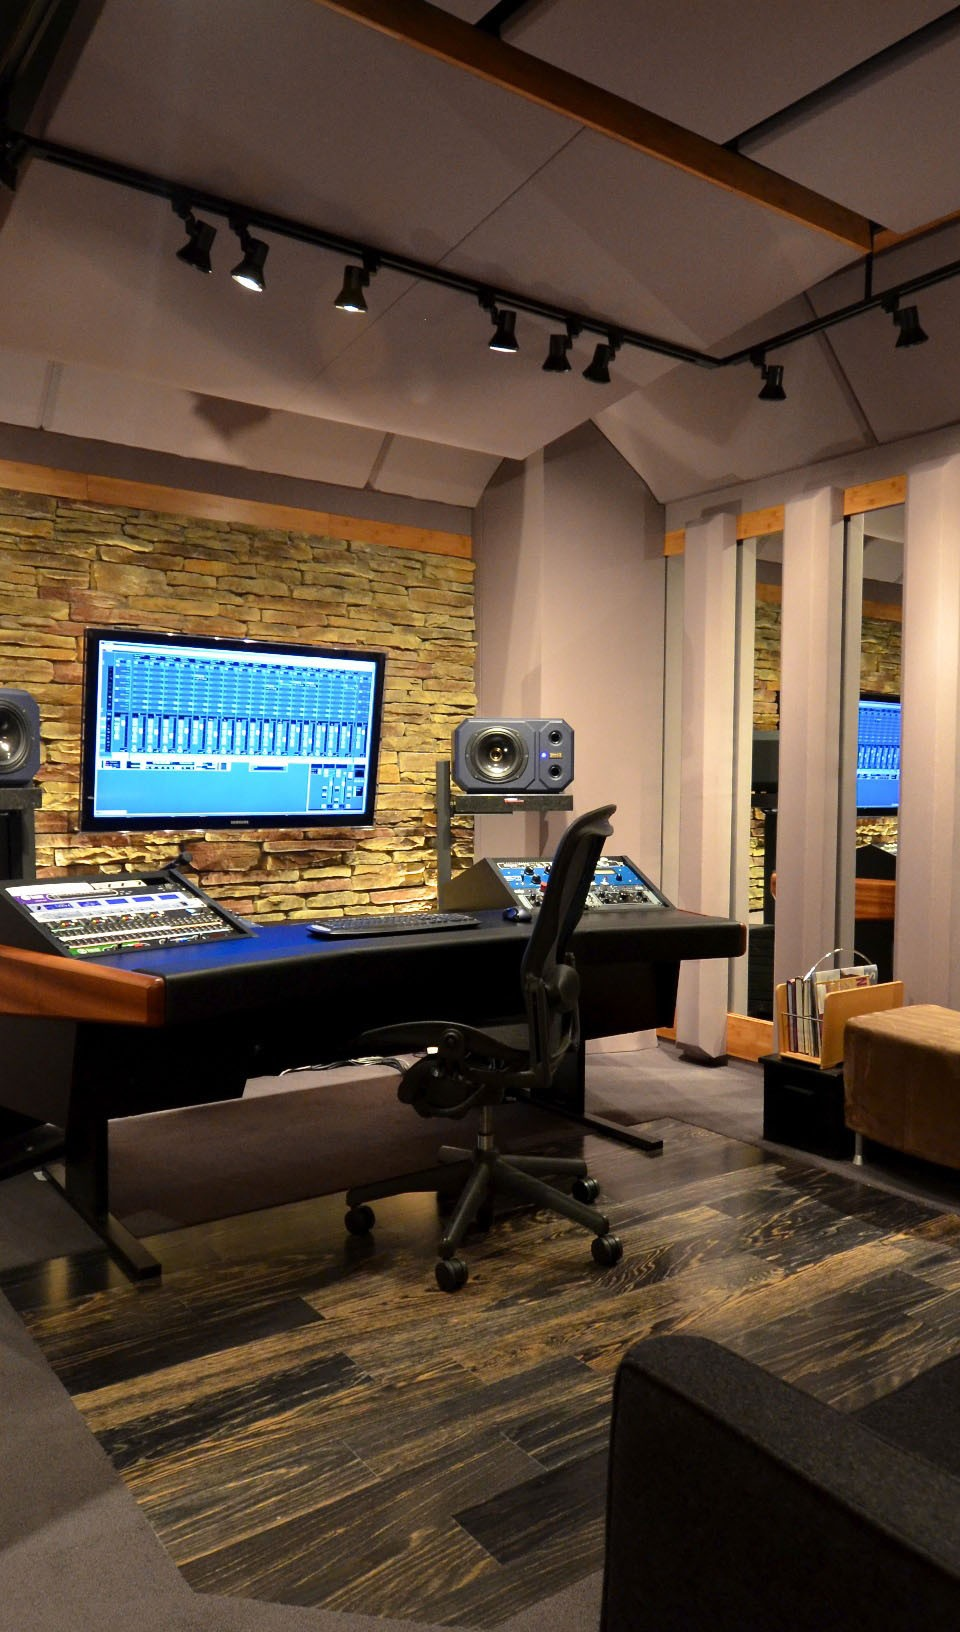 Home decor archives home design decorating remodeling ideas and designs - Home recording studio design ideas ...